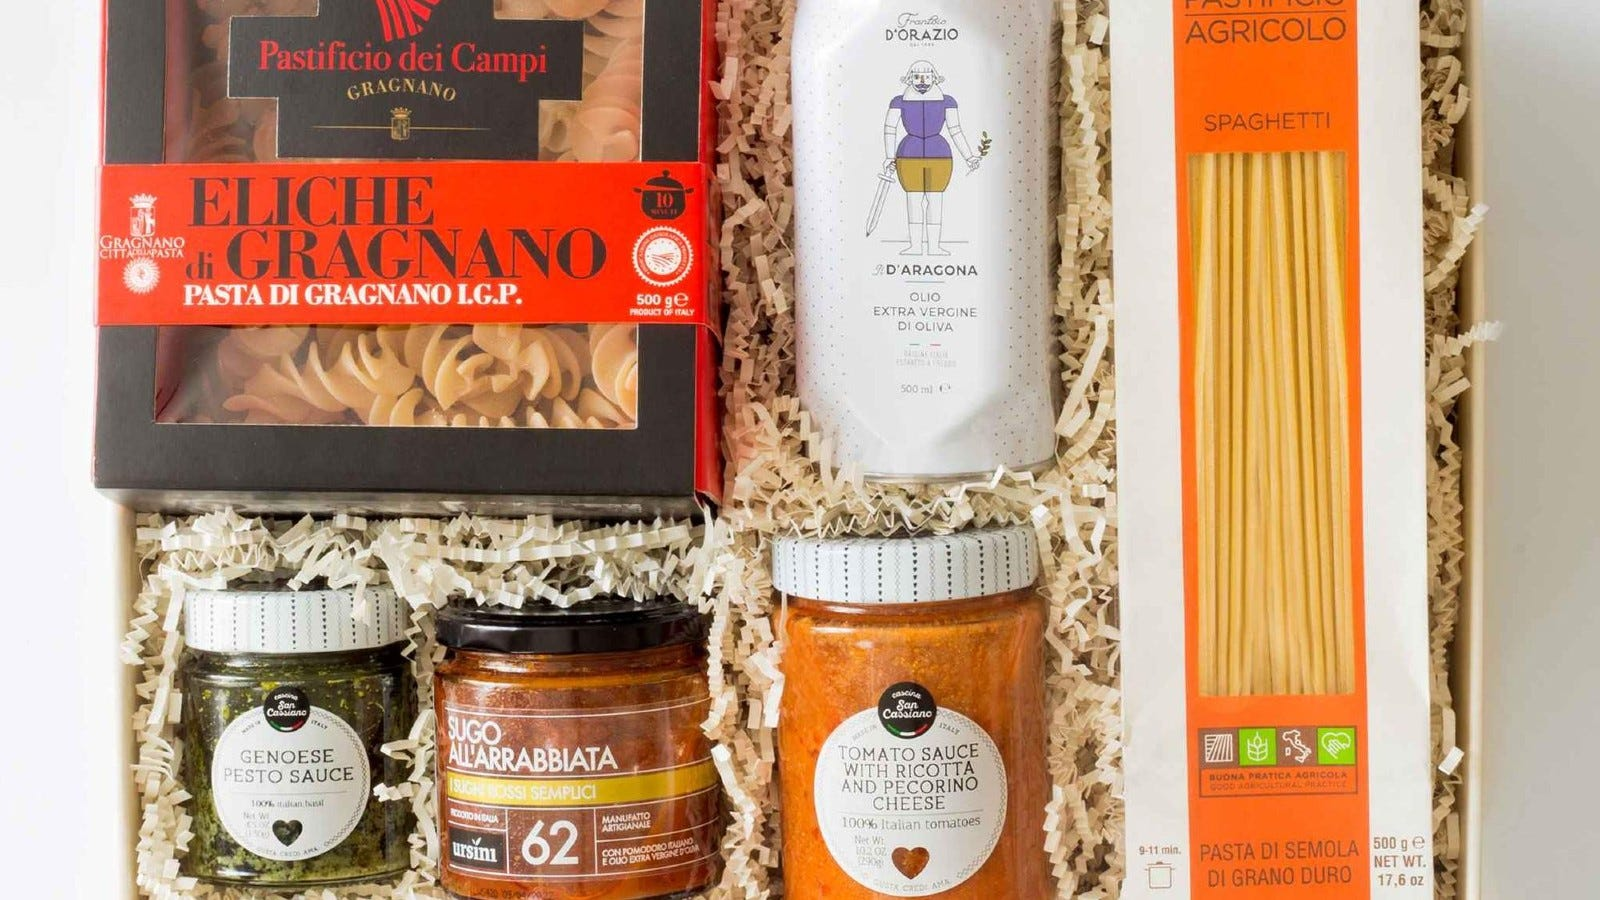 gift box that includes two boxes of pasta, olive oil, and three types of pasta sauces